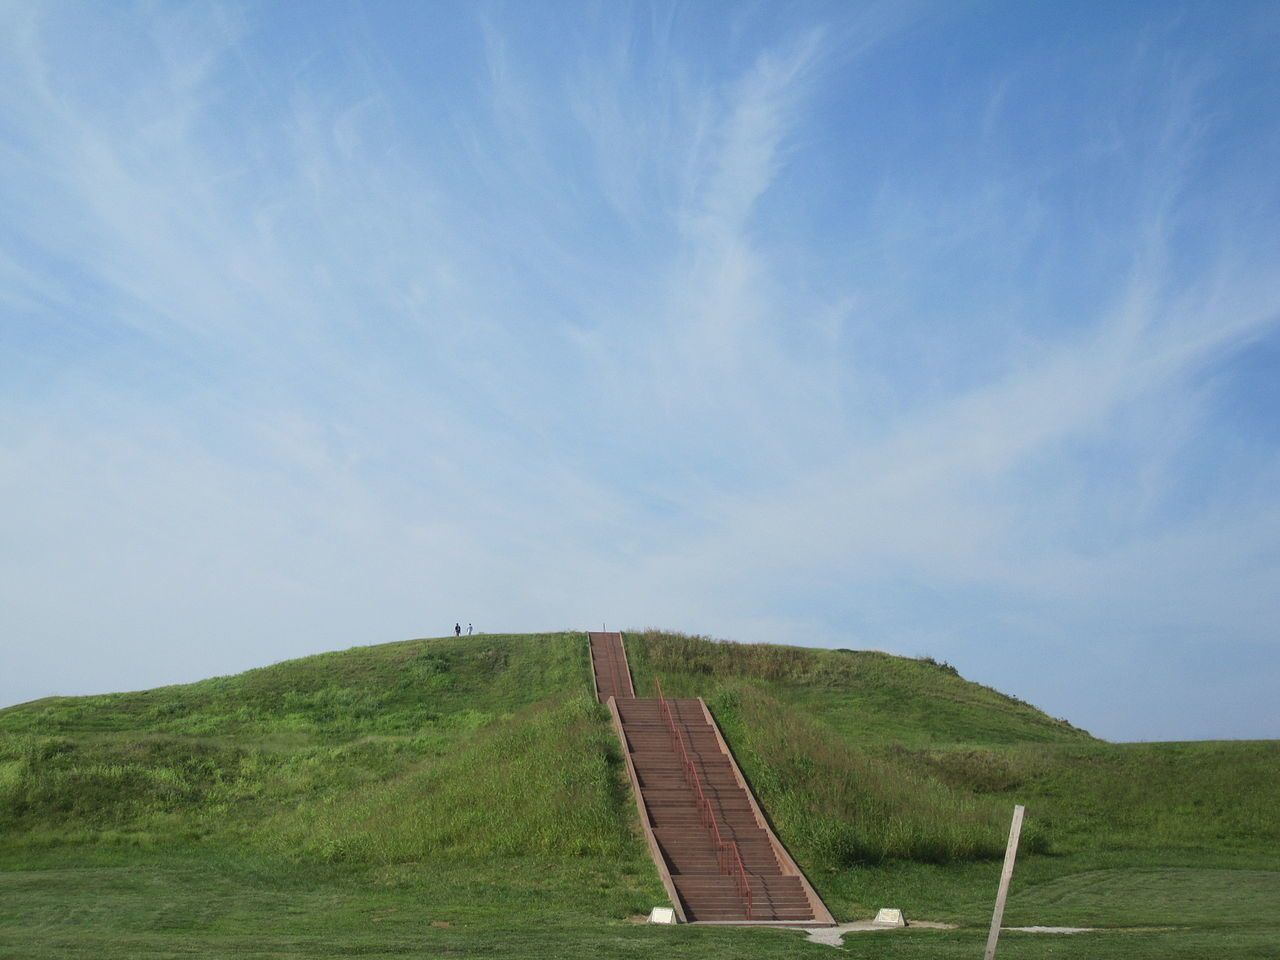 monks mounds - Par User: (WT-shared) Ethajek sur wts wikivoyage — Travail personnel, Domaine public, https://commons.wikimedia.org/w/index.php?curid=23325377